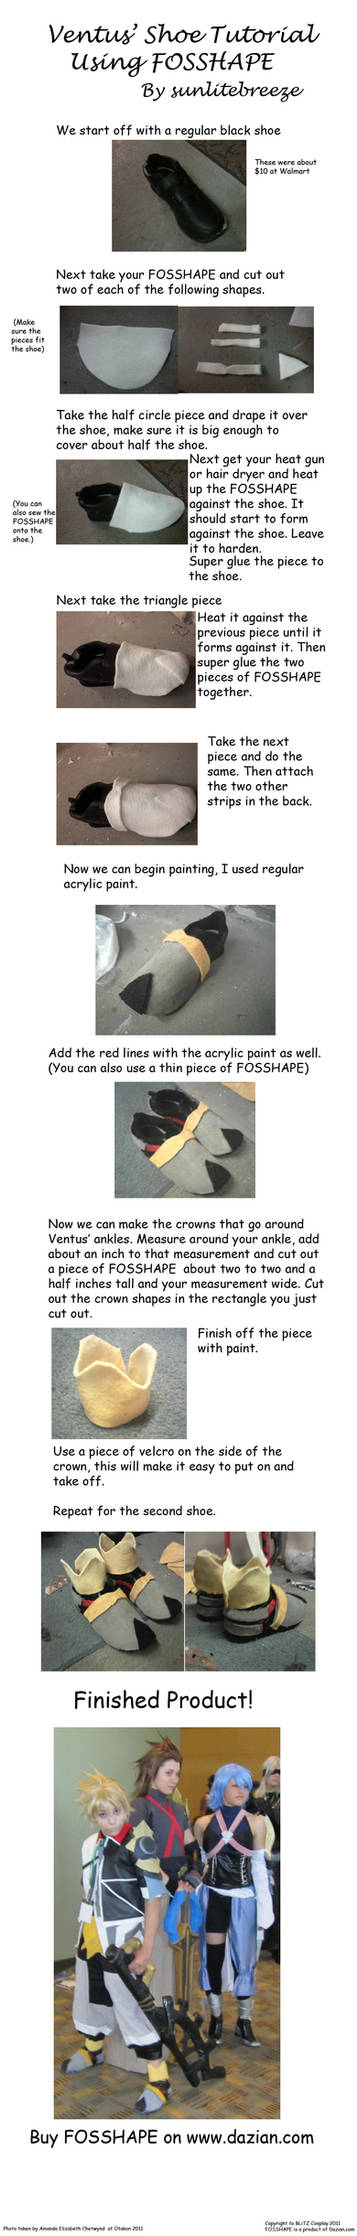 Ventus Shoe Tutorial by sunlitebreeze